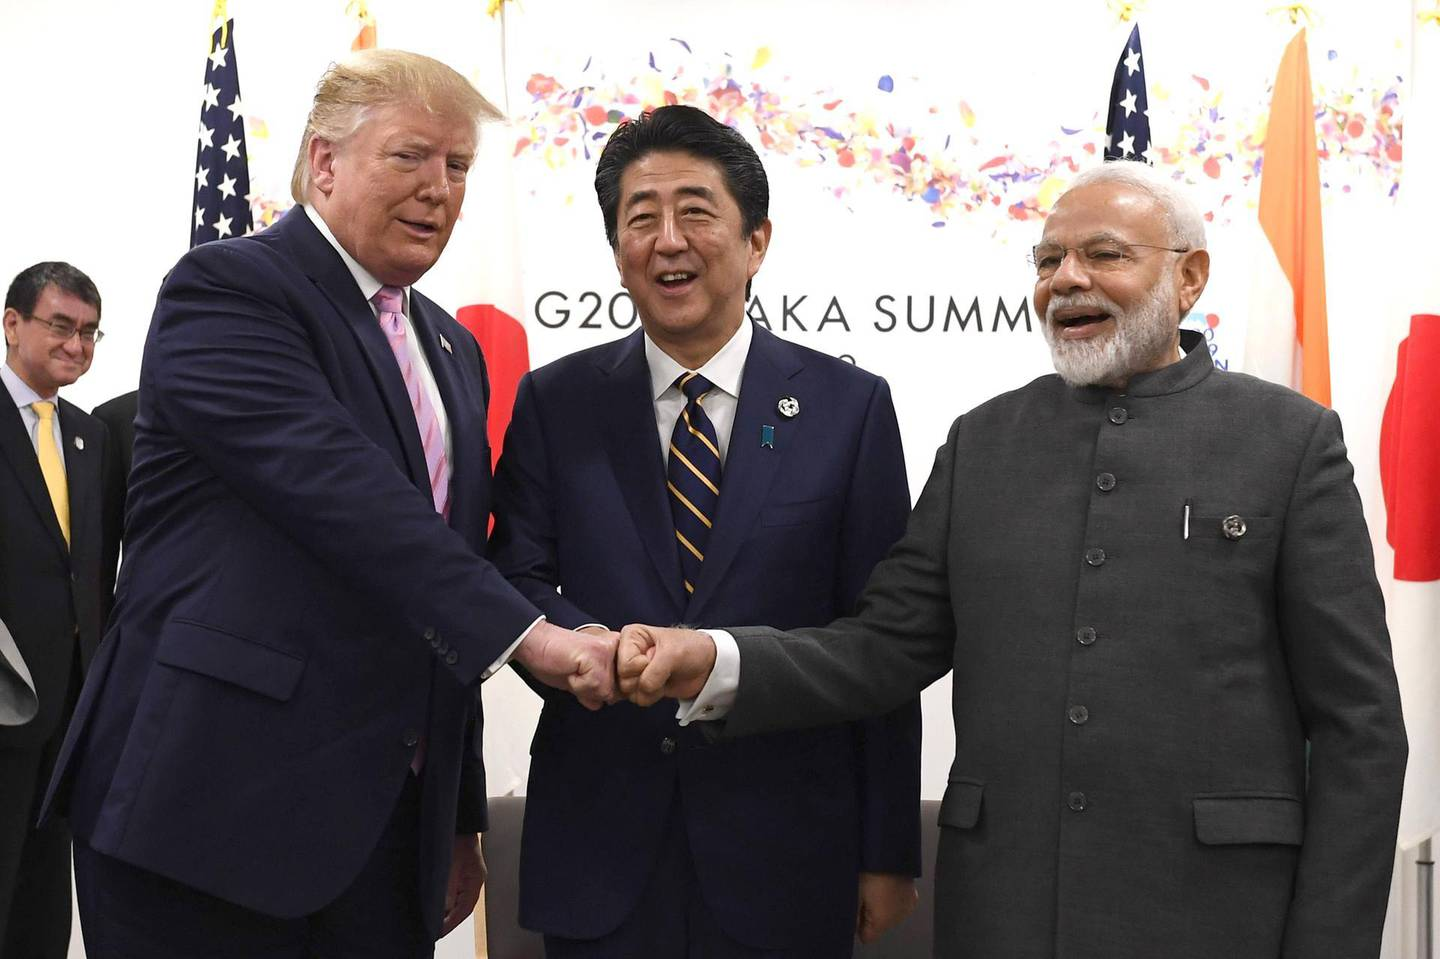 U.S. President Donald Trump, left, Shinzo Abe, Japan's prime minister, center, and Narendra Modi, India's prime minister, place their fists together during a trilateral meeting at the Group of 20 (G-20) summit in Osaka, Japan, on Friday, June 28, 2019. The world's most powerful leaders are gathering in Japan for meetings that may set the direction for the global economy and make the difference between war and peace in geopolitical hotspots. Photographer: Carl Court/Pool via Bloomberg